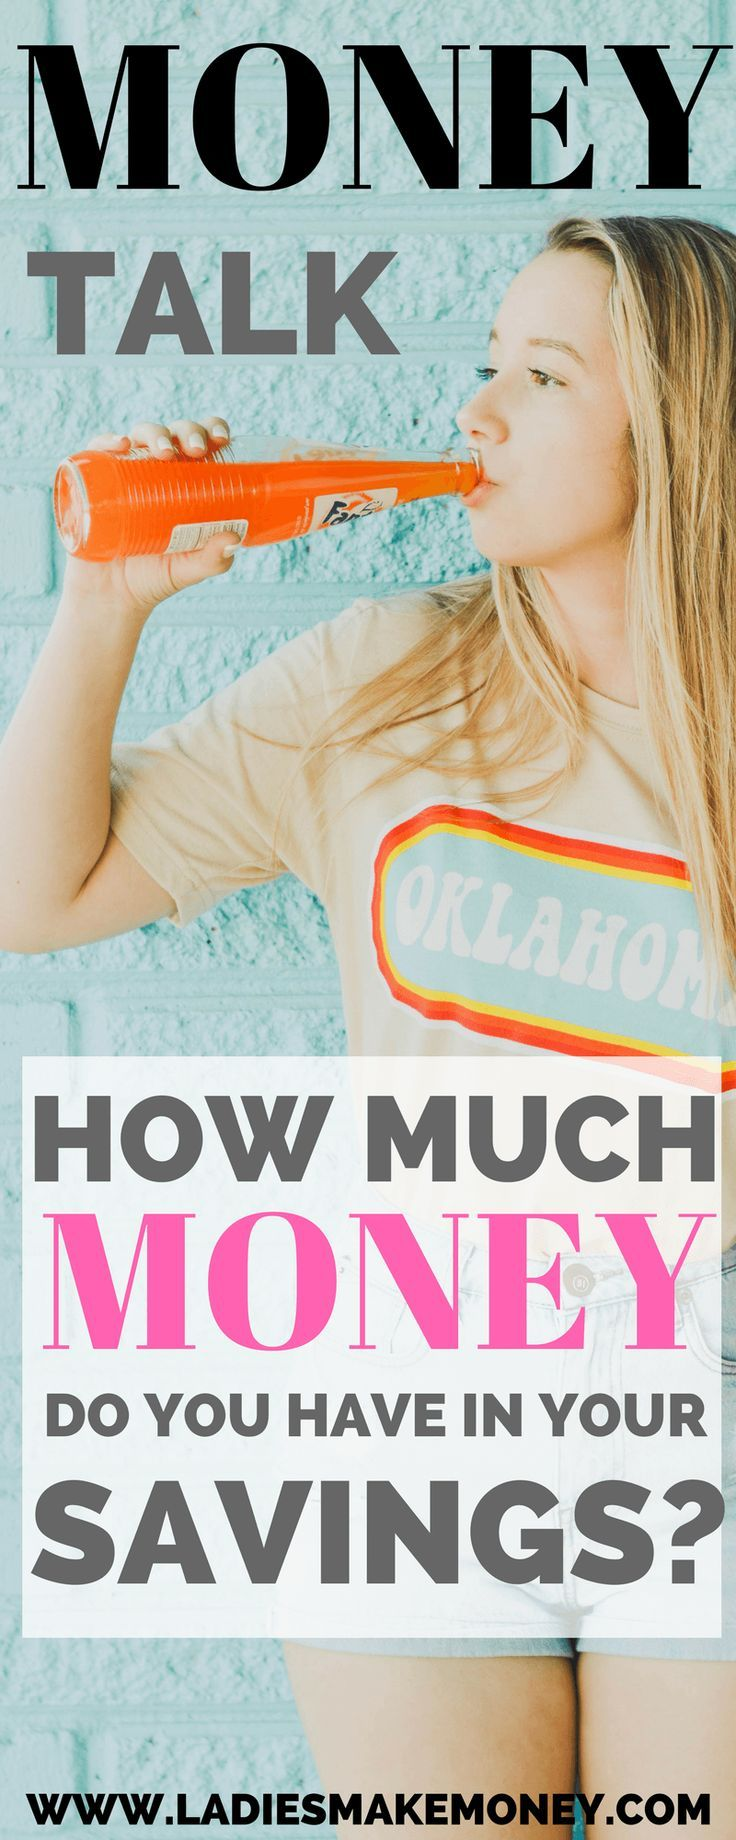 Here are few different ways to save money each month. If you do all of them, you may be able to save hundreds or thousands of dollarseach year! Create a monthly budget that you can stick to and start growing your saving accounts. We have the best saving